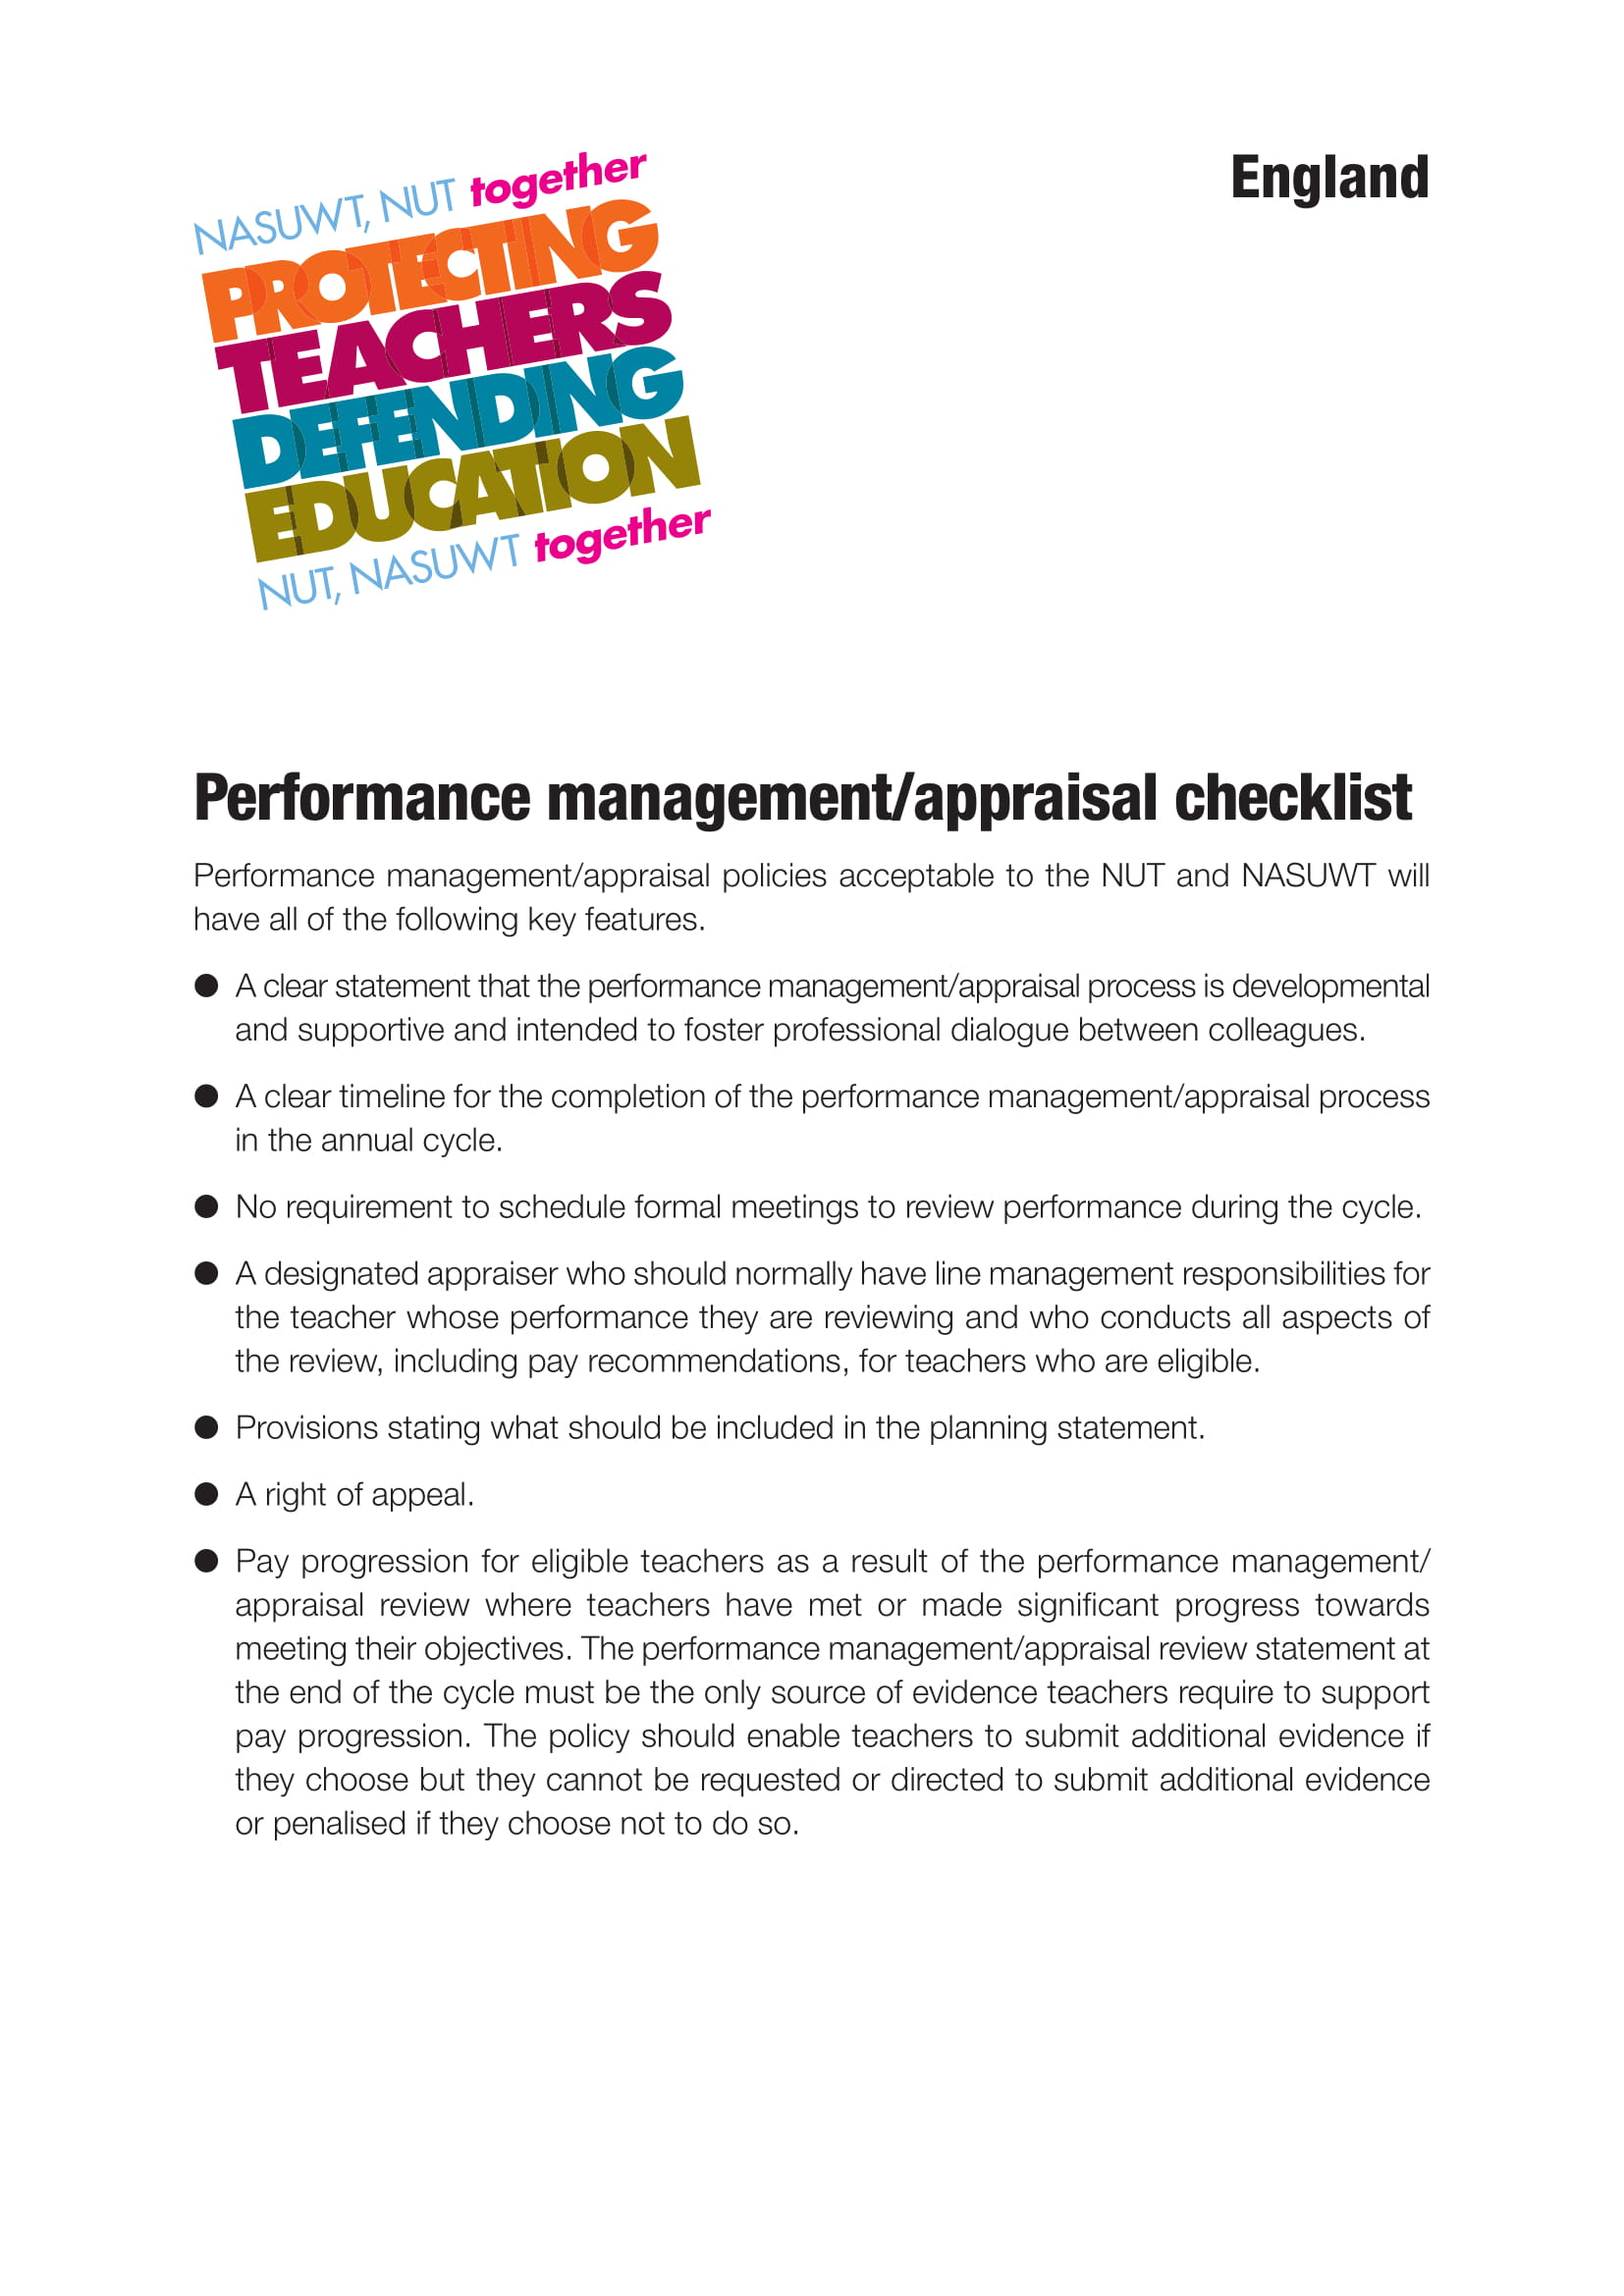 joint appraisal checklist eng 8363 1